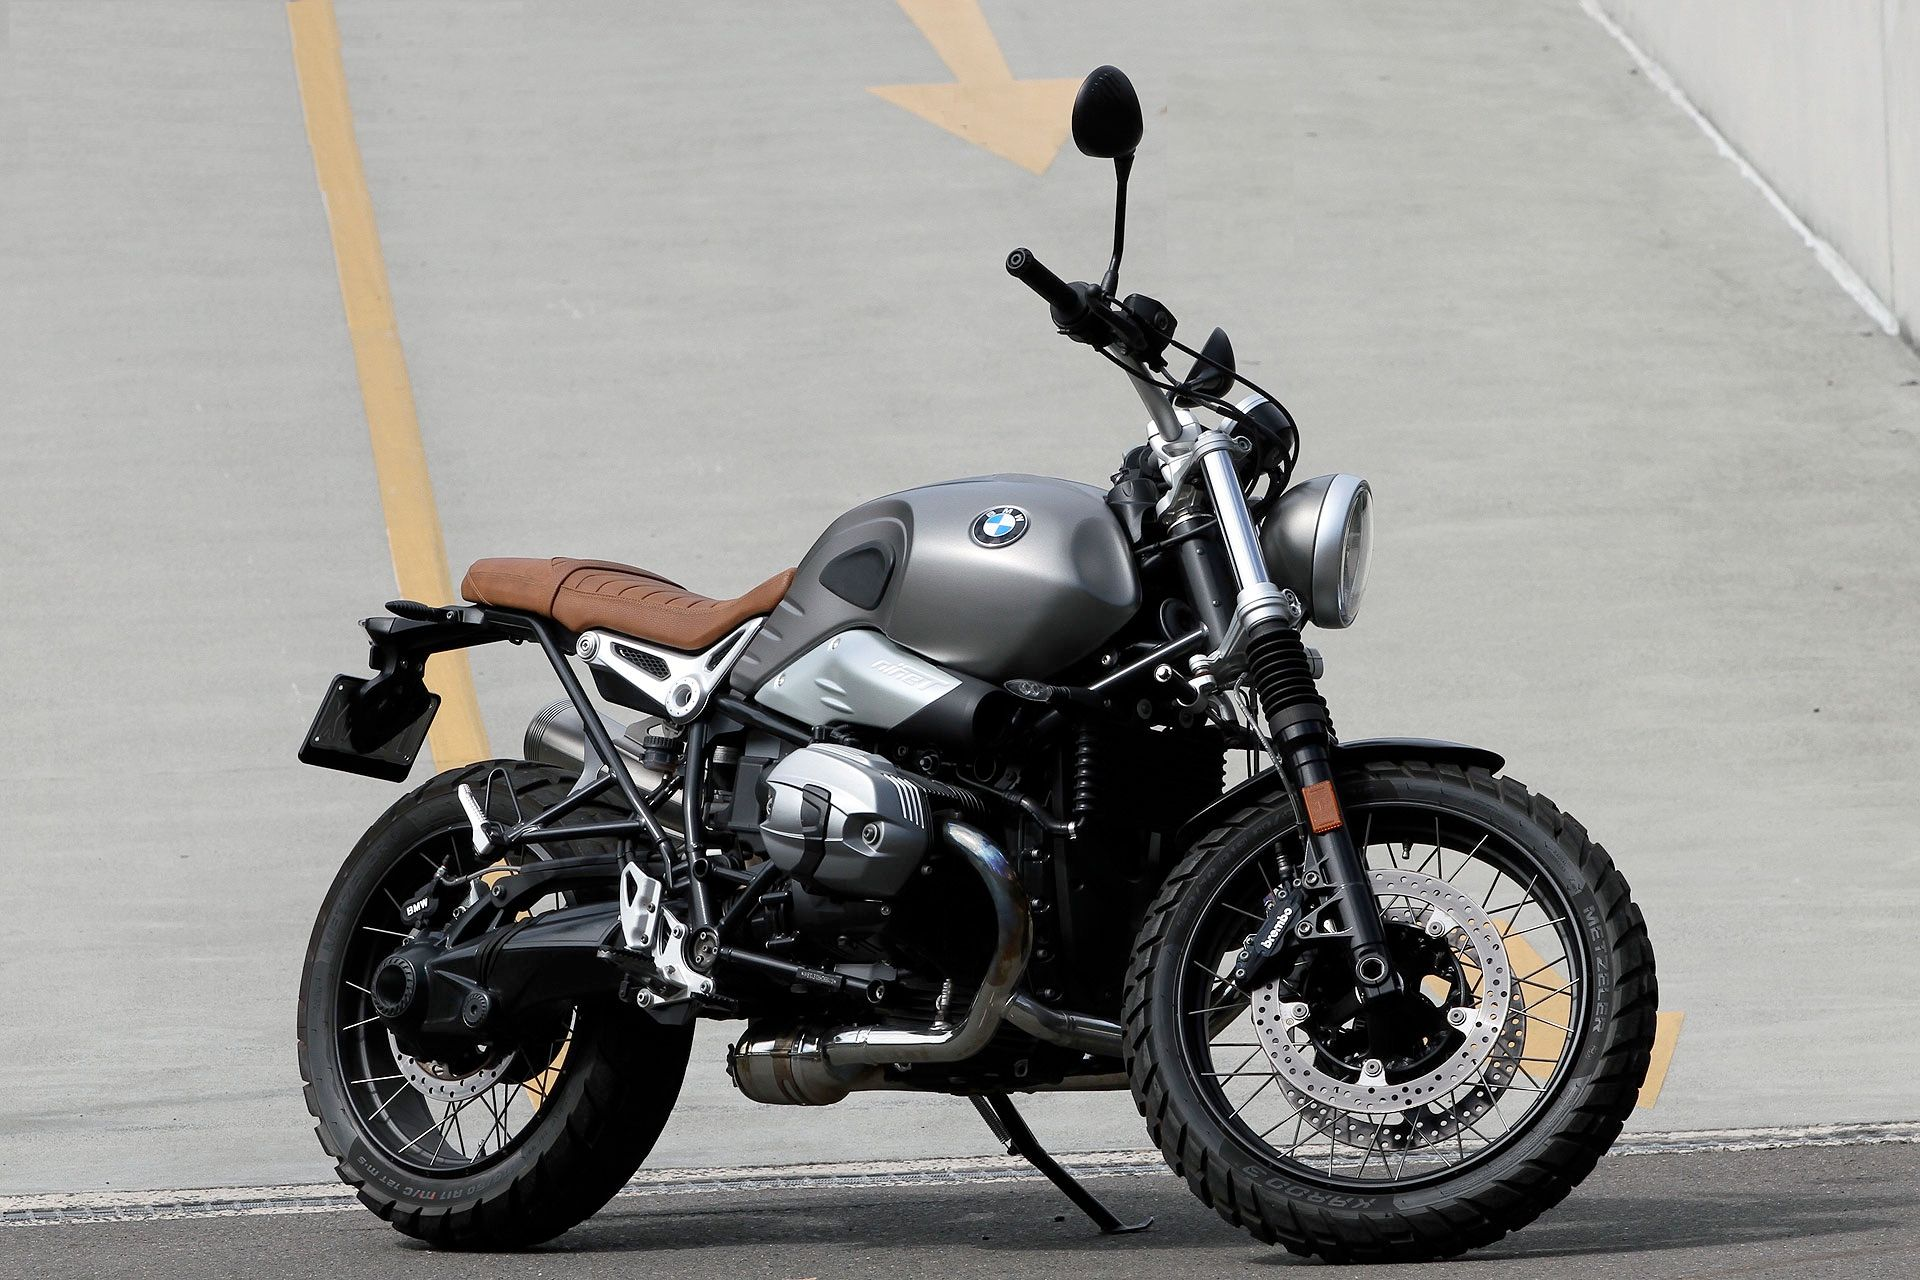 The BMW R Nine T Scrambler - one of the most beautiful motorcycles of 2019